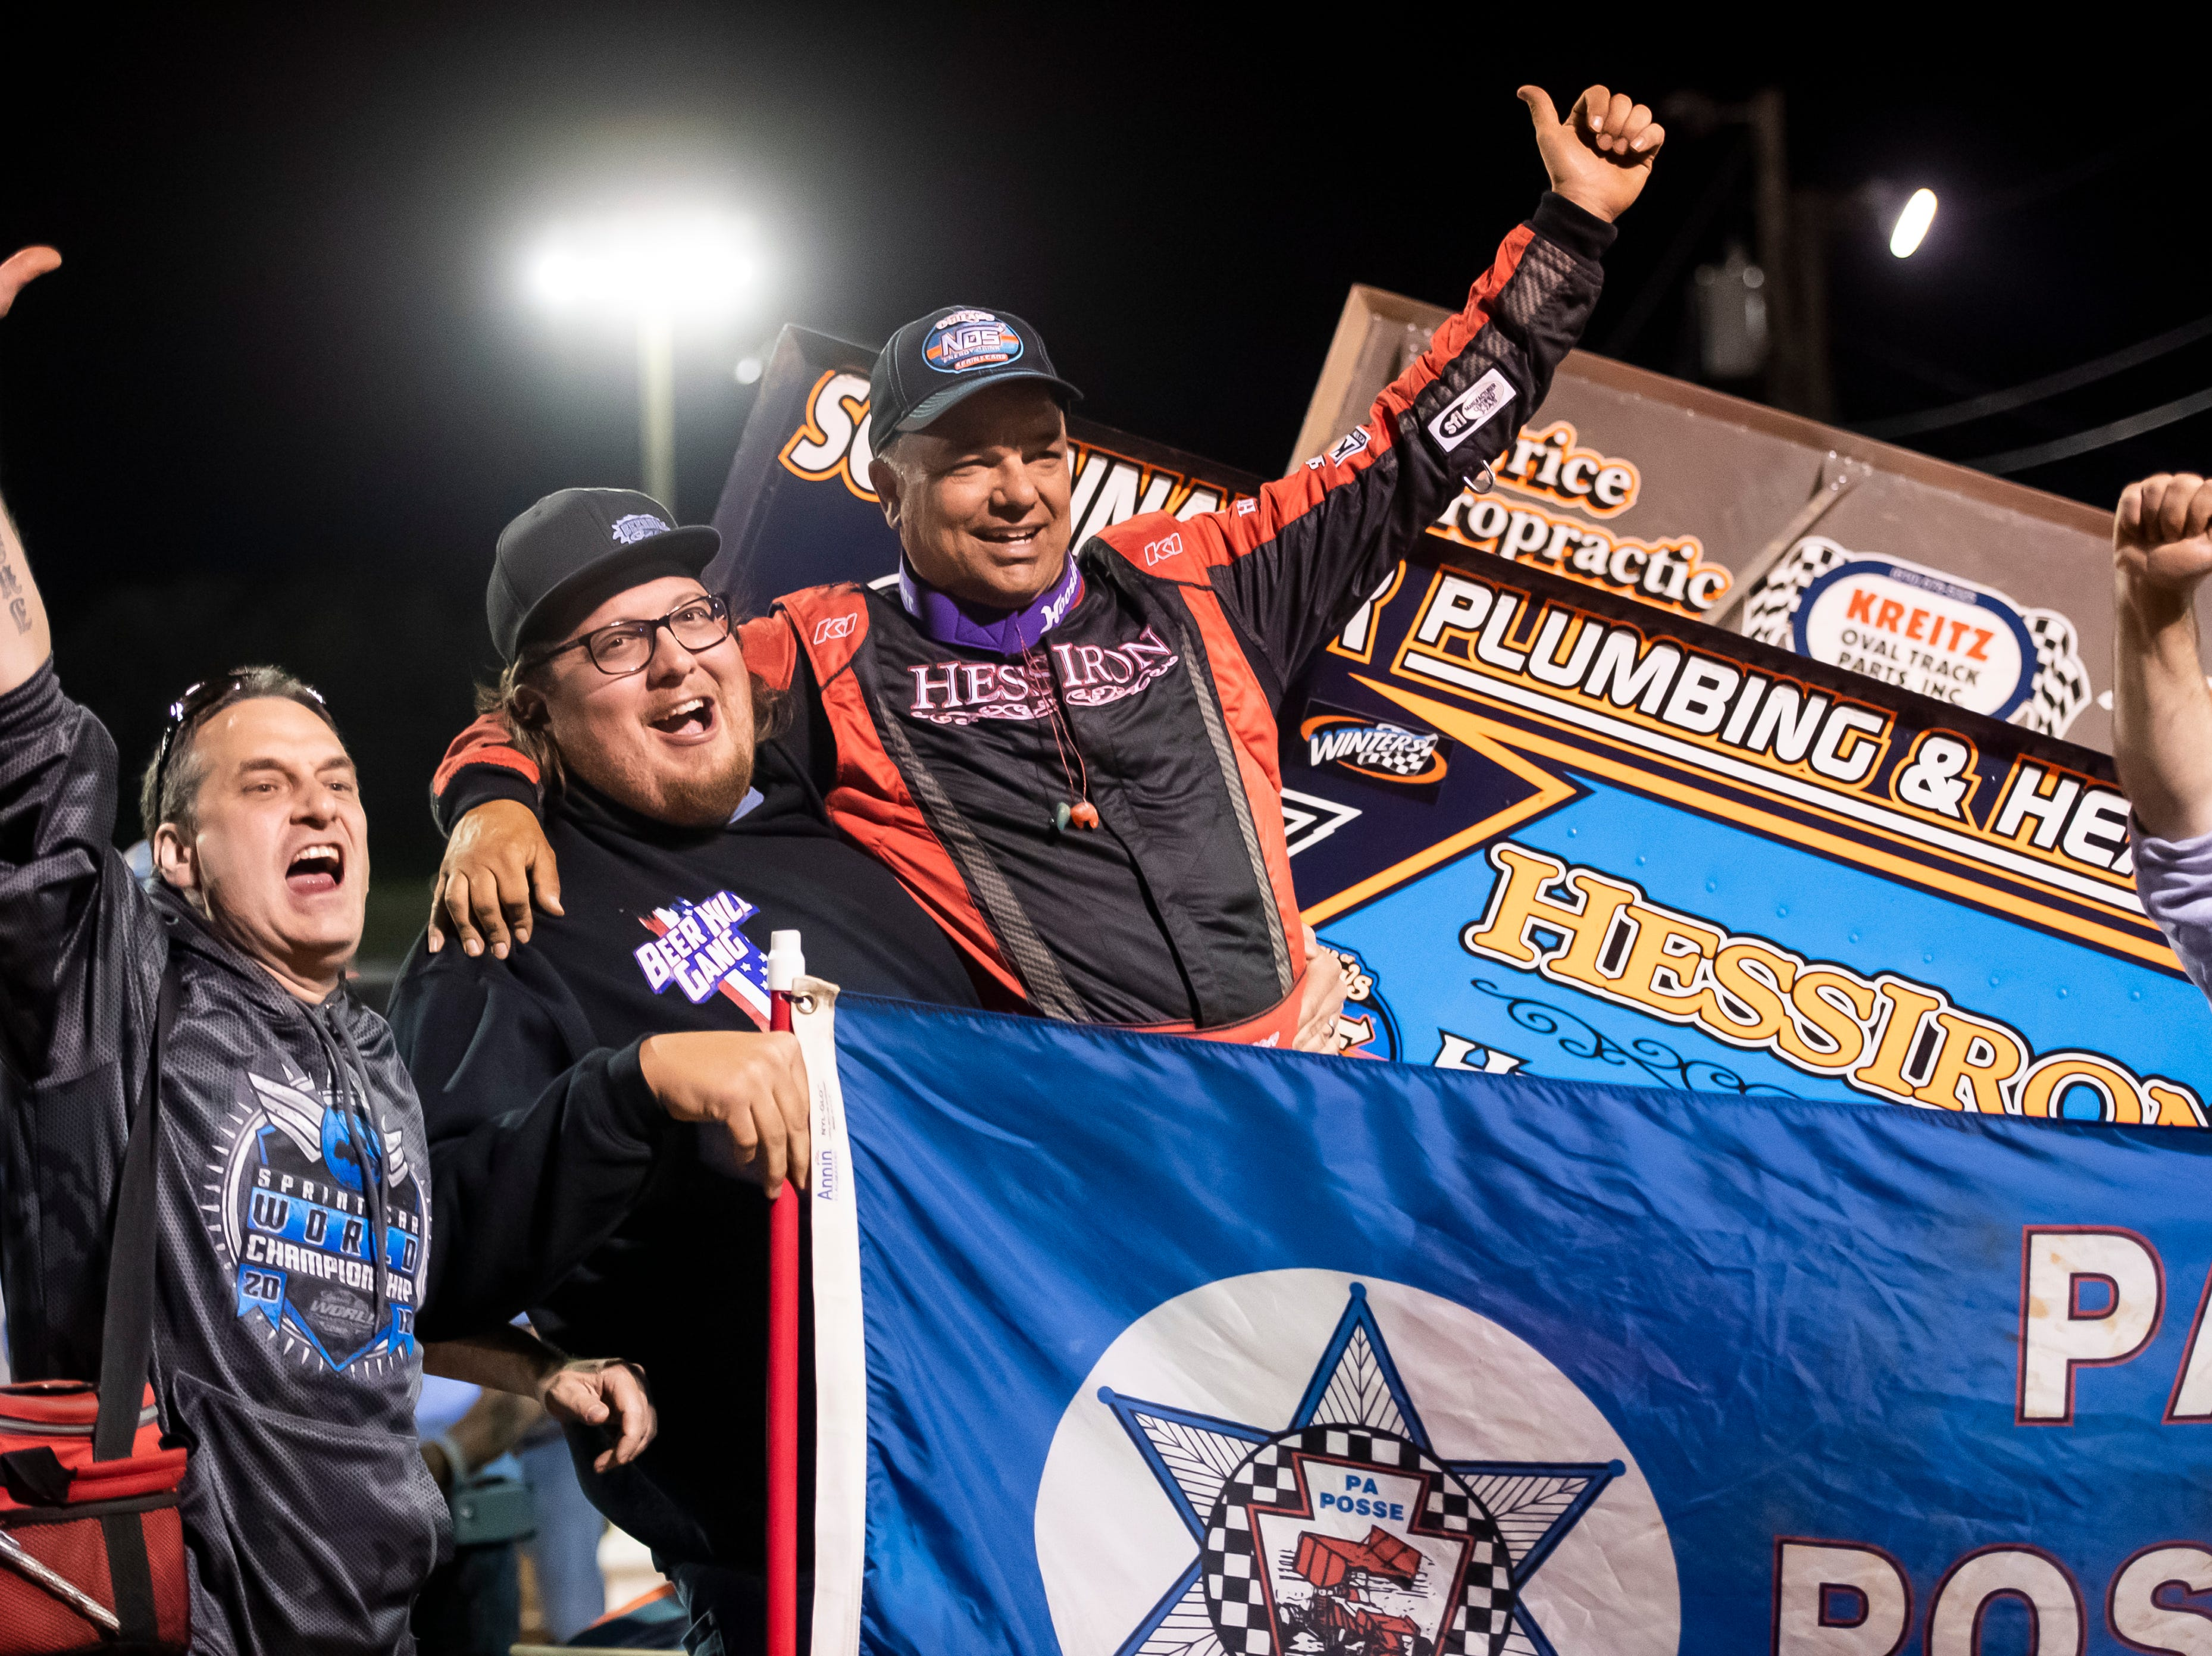 Lance Dewease celebrates with PA Posse fans after winning the feature race race in the World of Outlaws Gettysburg Clash at Lincoln Speedway in Abbottstown on Wednesday, May 15, 2019.